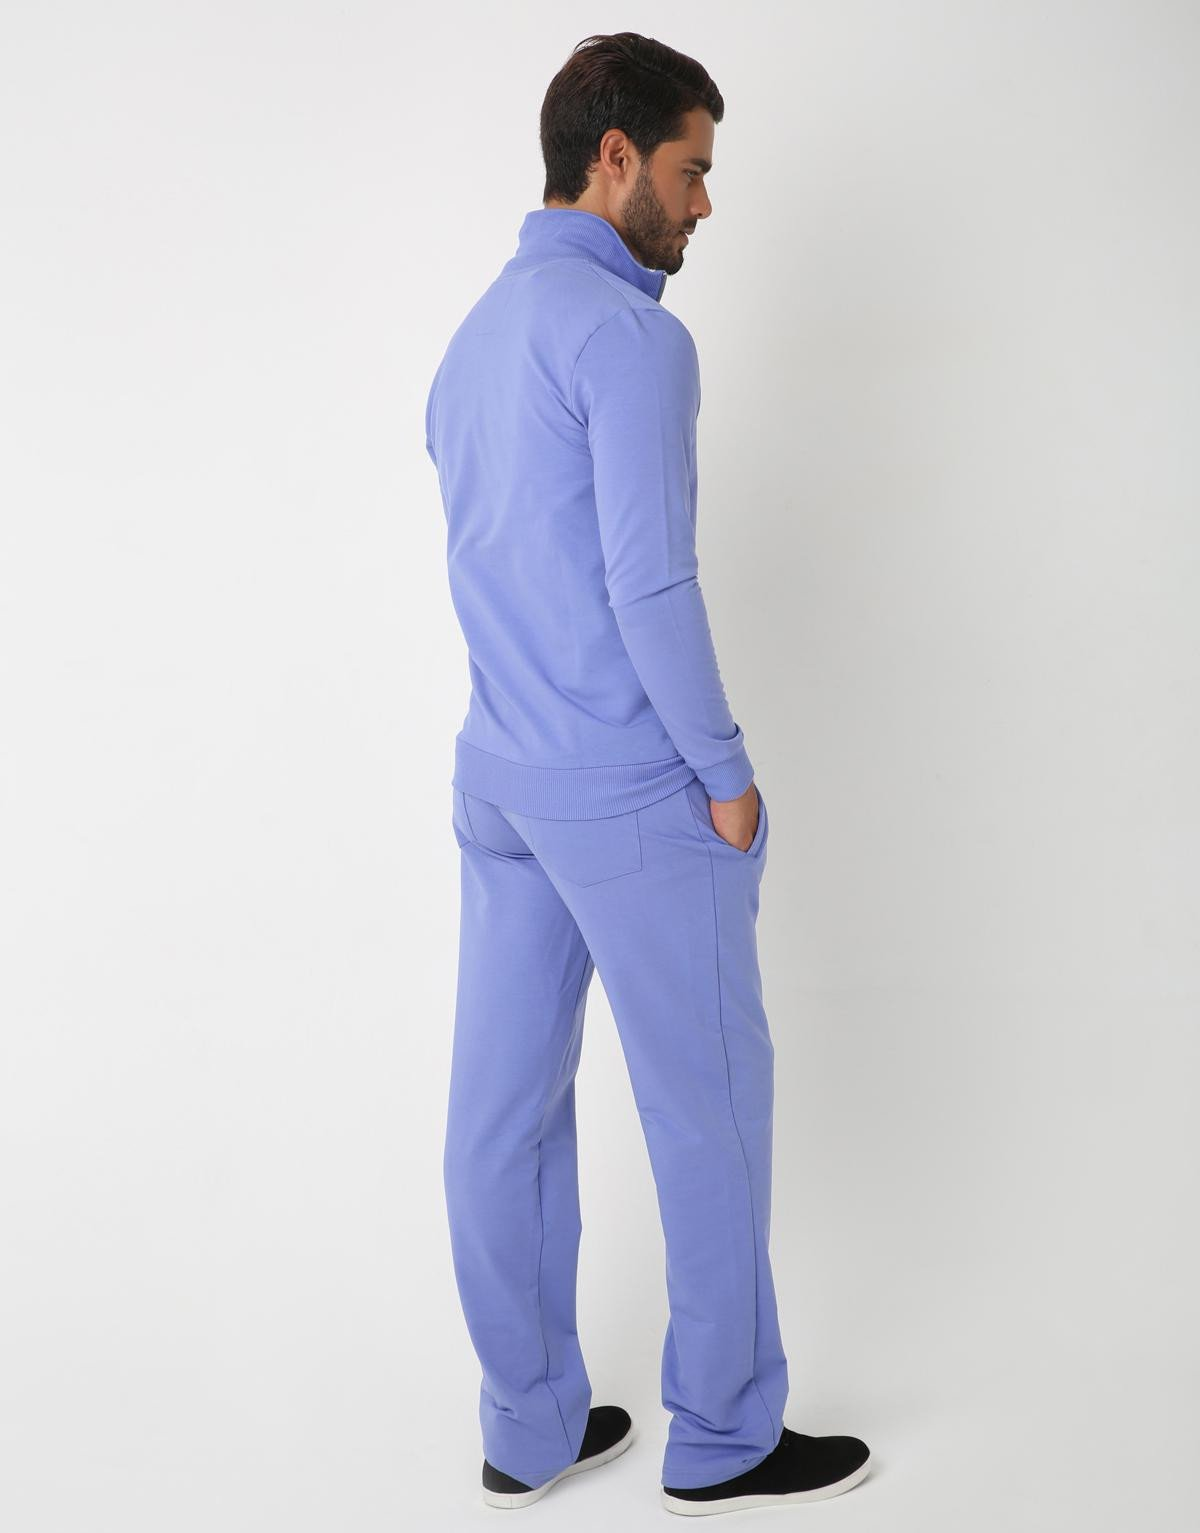 Uni Color Street Suit- Upper